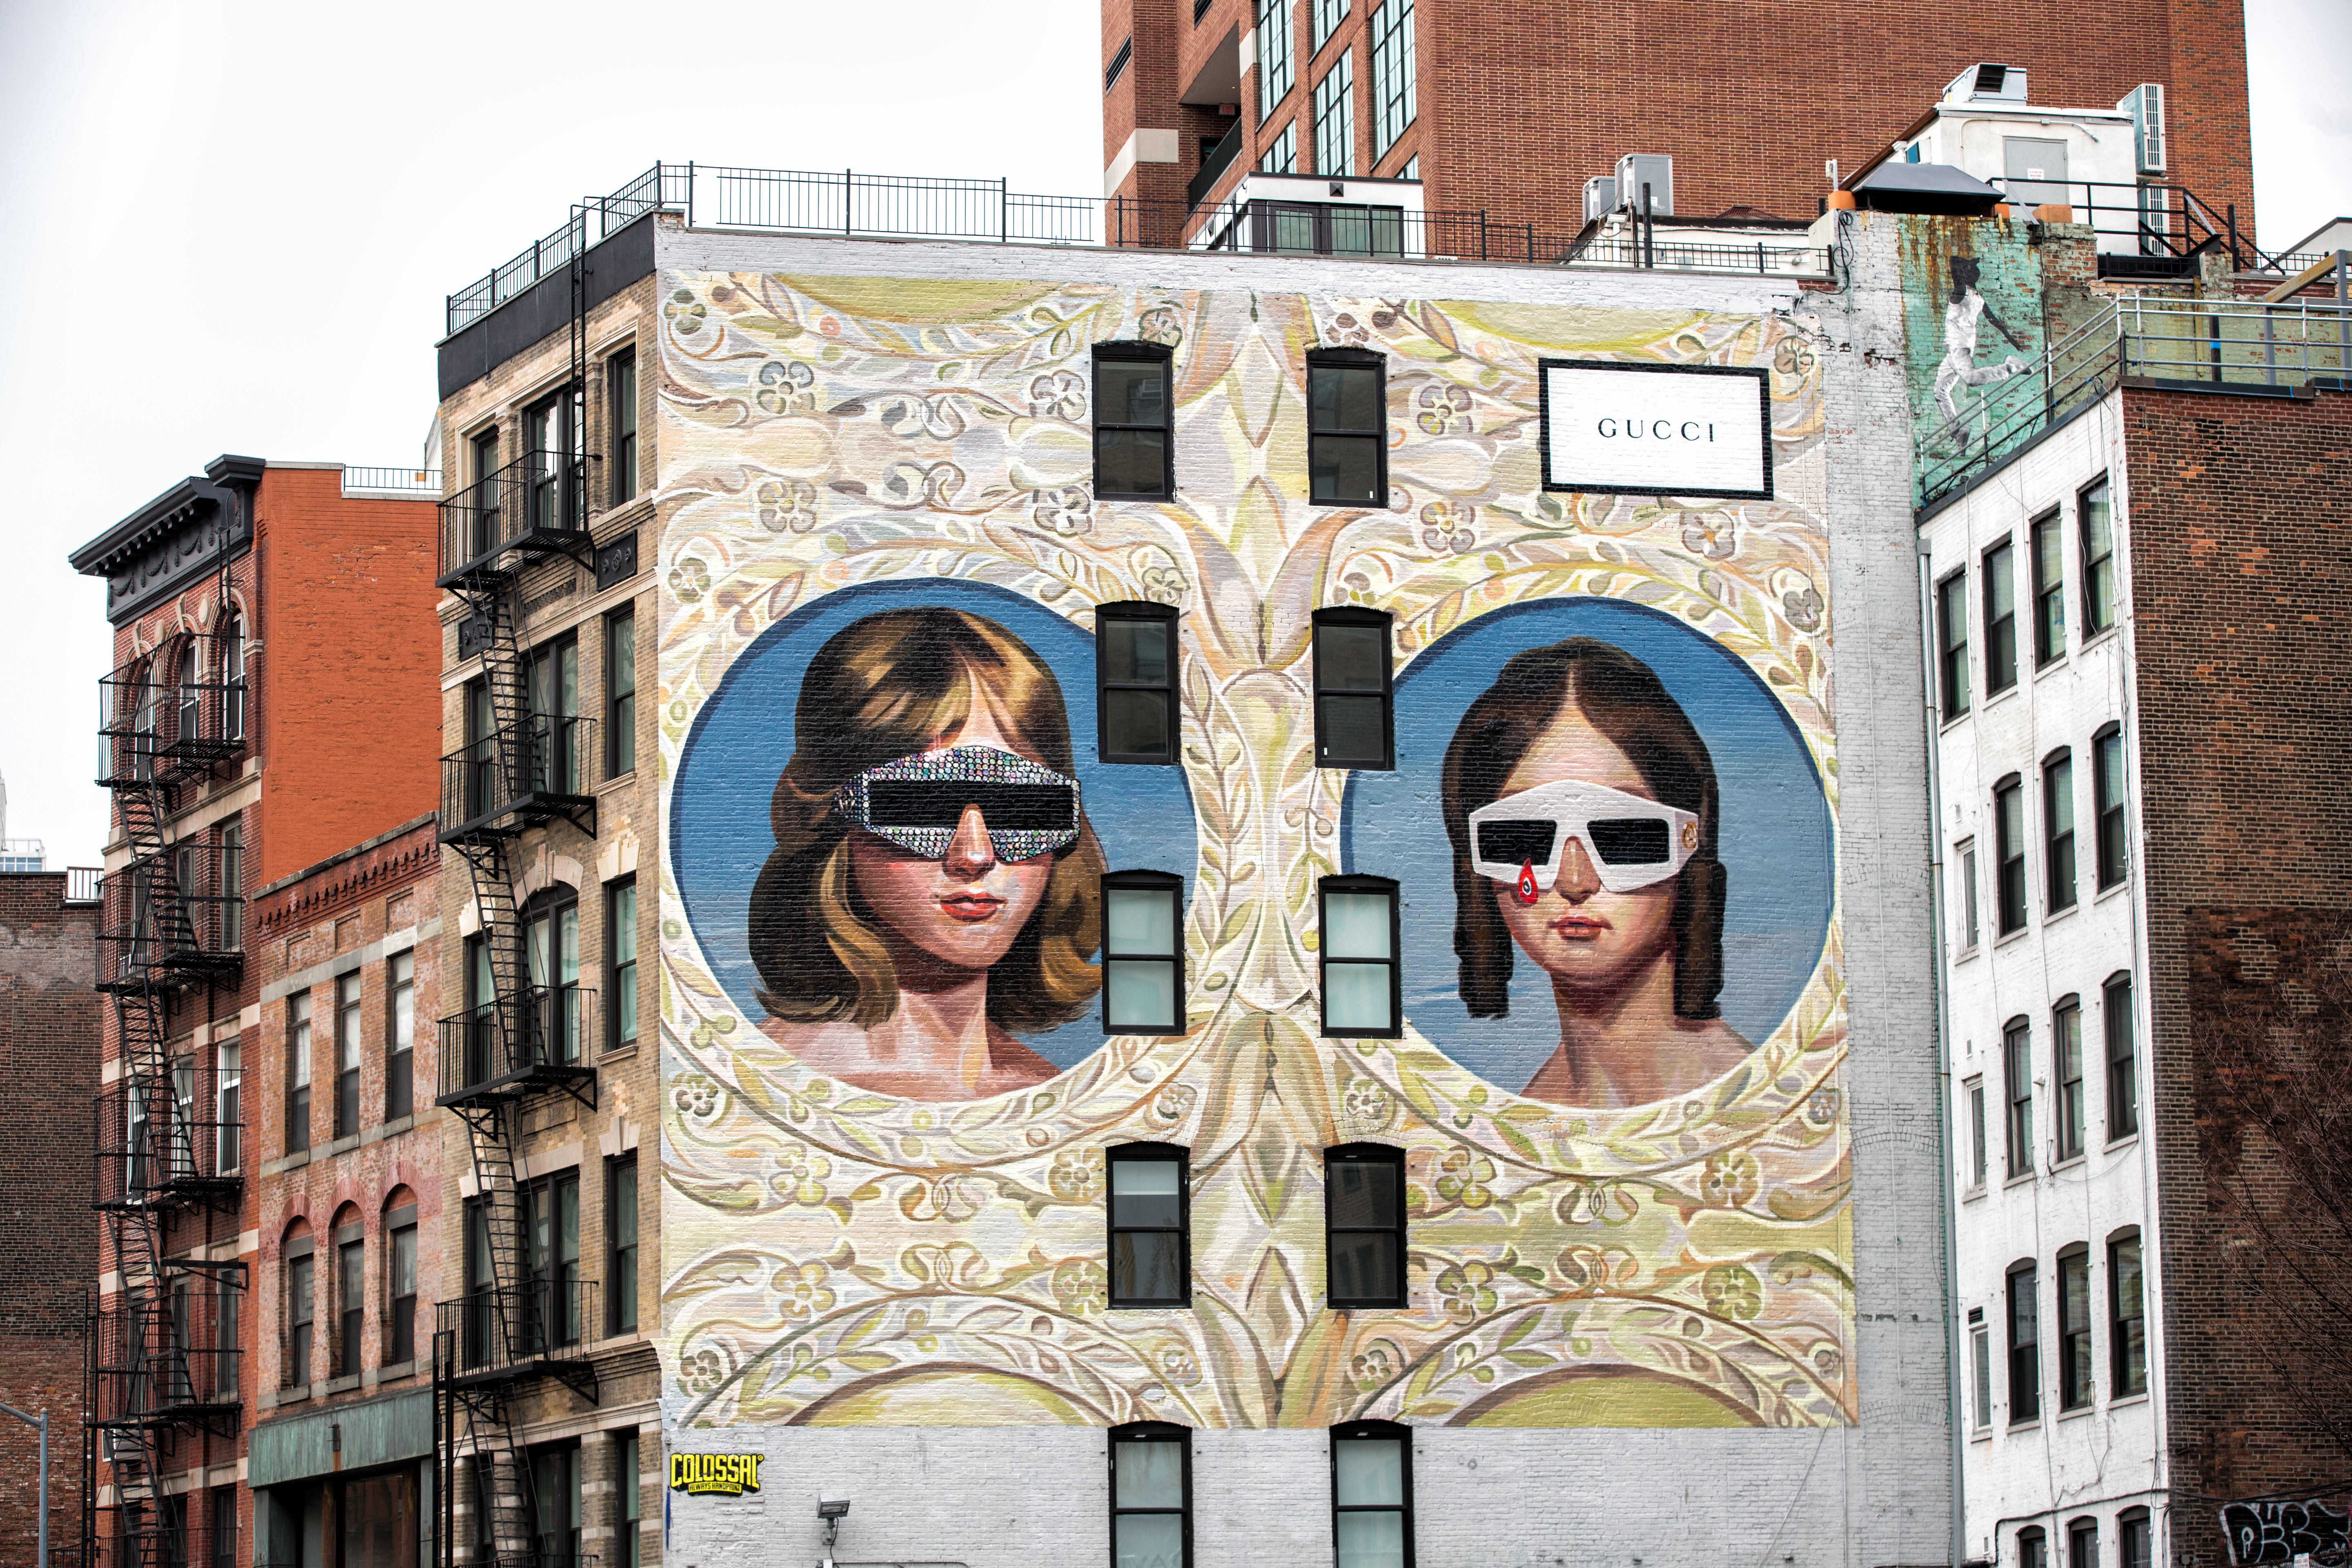 The Gucci Art Wall in New York by Ignasi Monreal